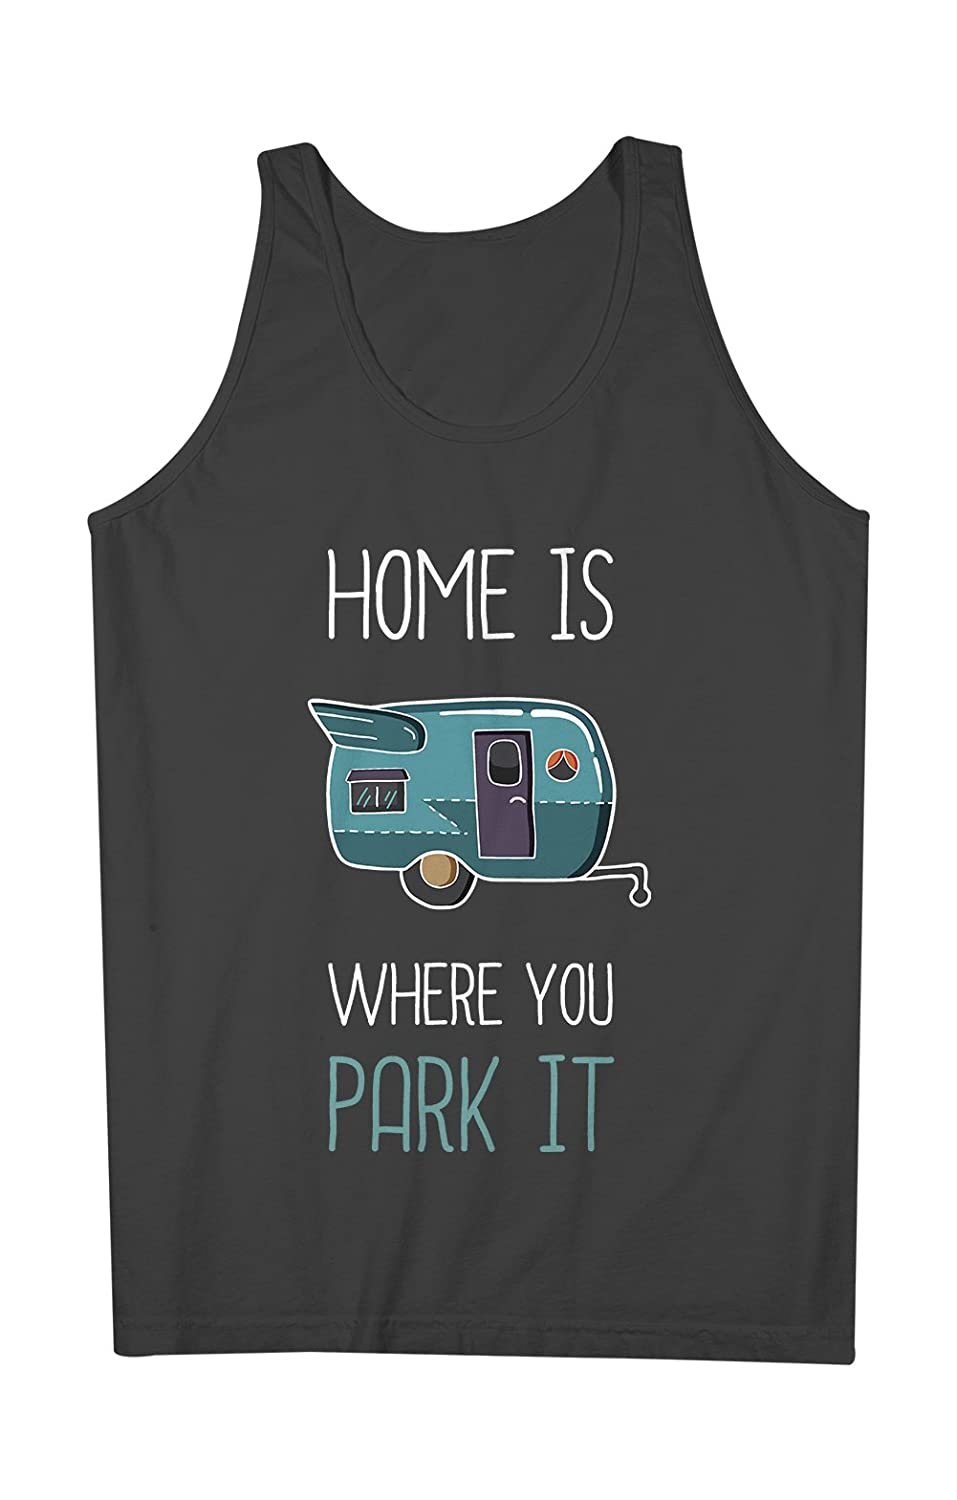 Home Is Where You Park It おかしいです Camping Camper Holiday 男性用 Tank Top Sleeveless Shirt